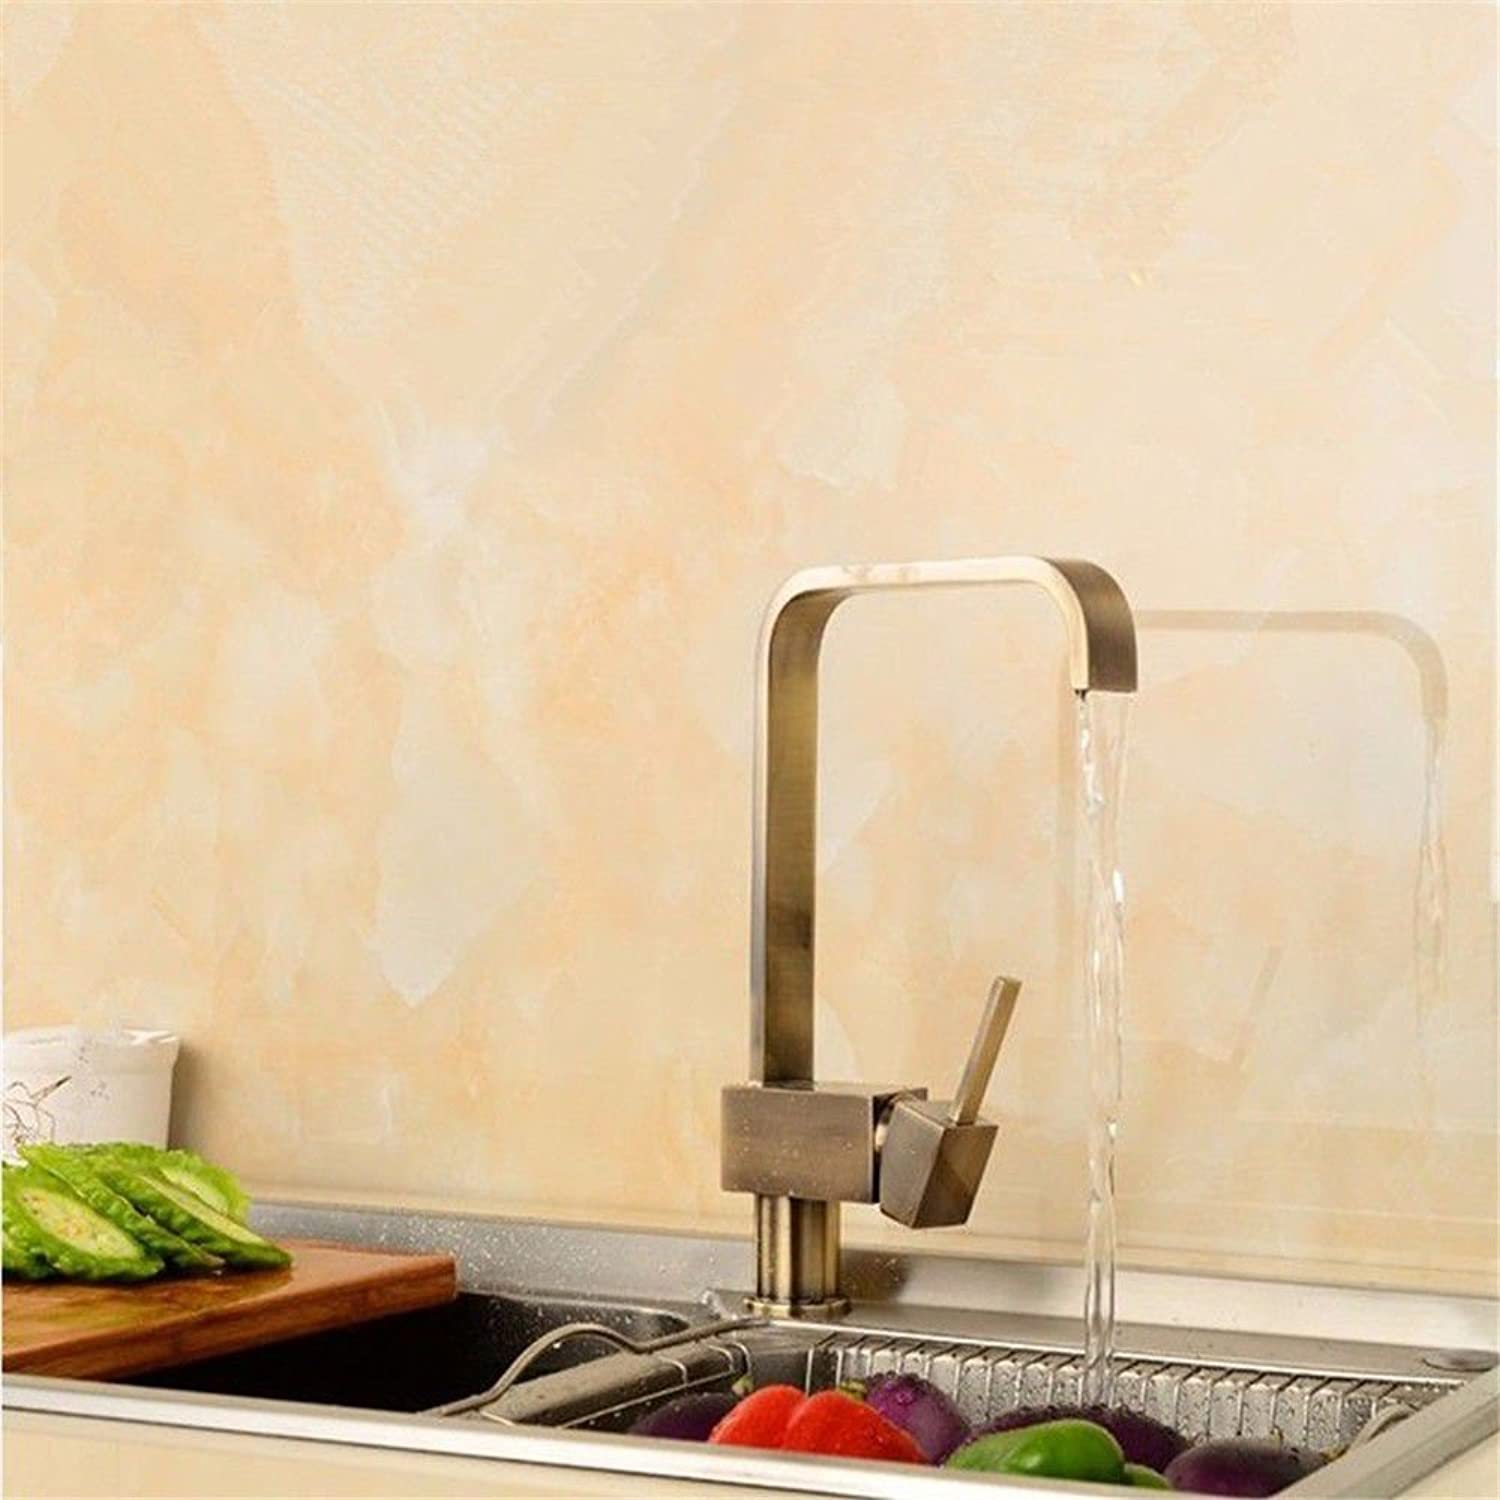 Commercial Single Lever Pull Down Kitchen Sink Faucet Brass Copper Lead-Free Kitchen Faucet Quartet Hot and Cold Mixing Valve Sink Faucet Retro Water-Saving Environmental Predection Faucet